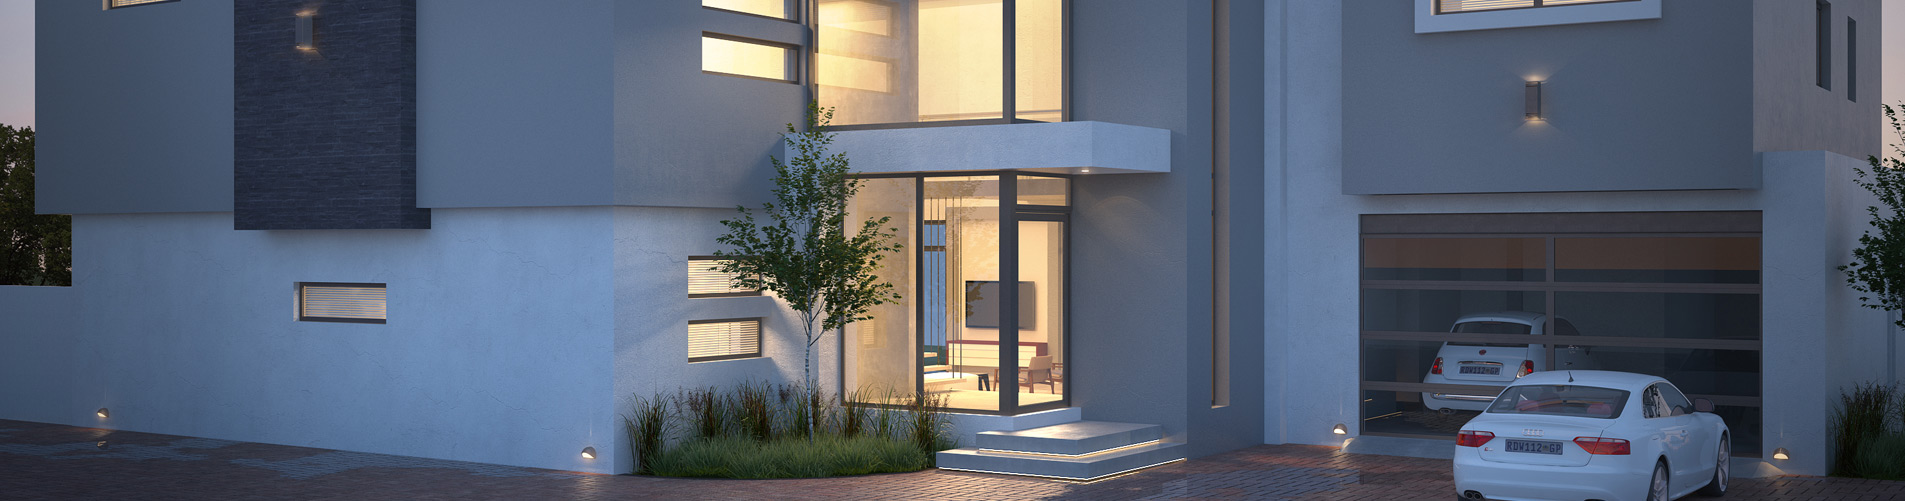 3D Architectural Rendering of Exterior